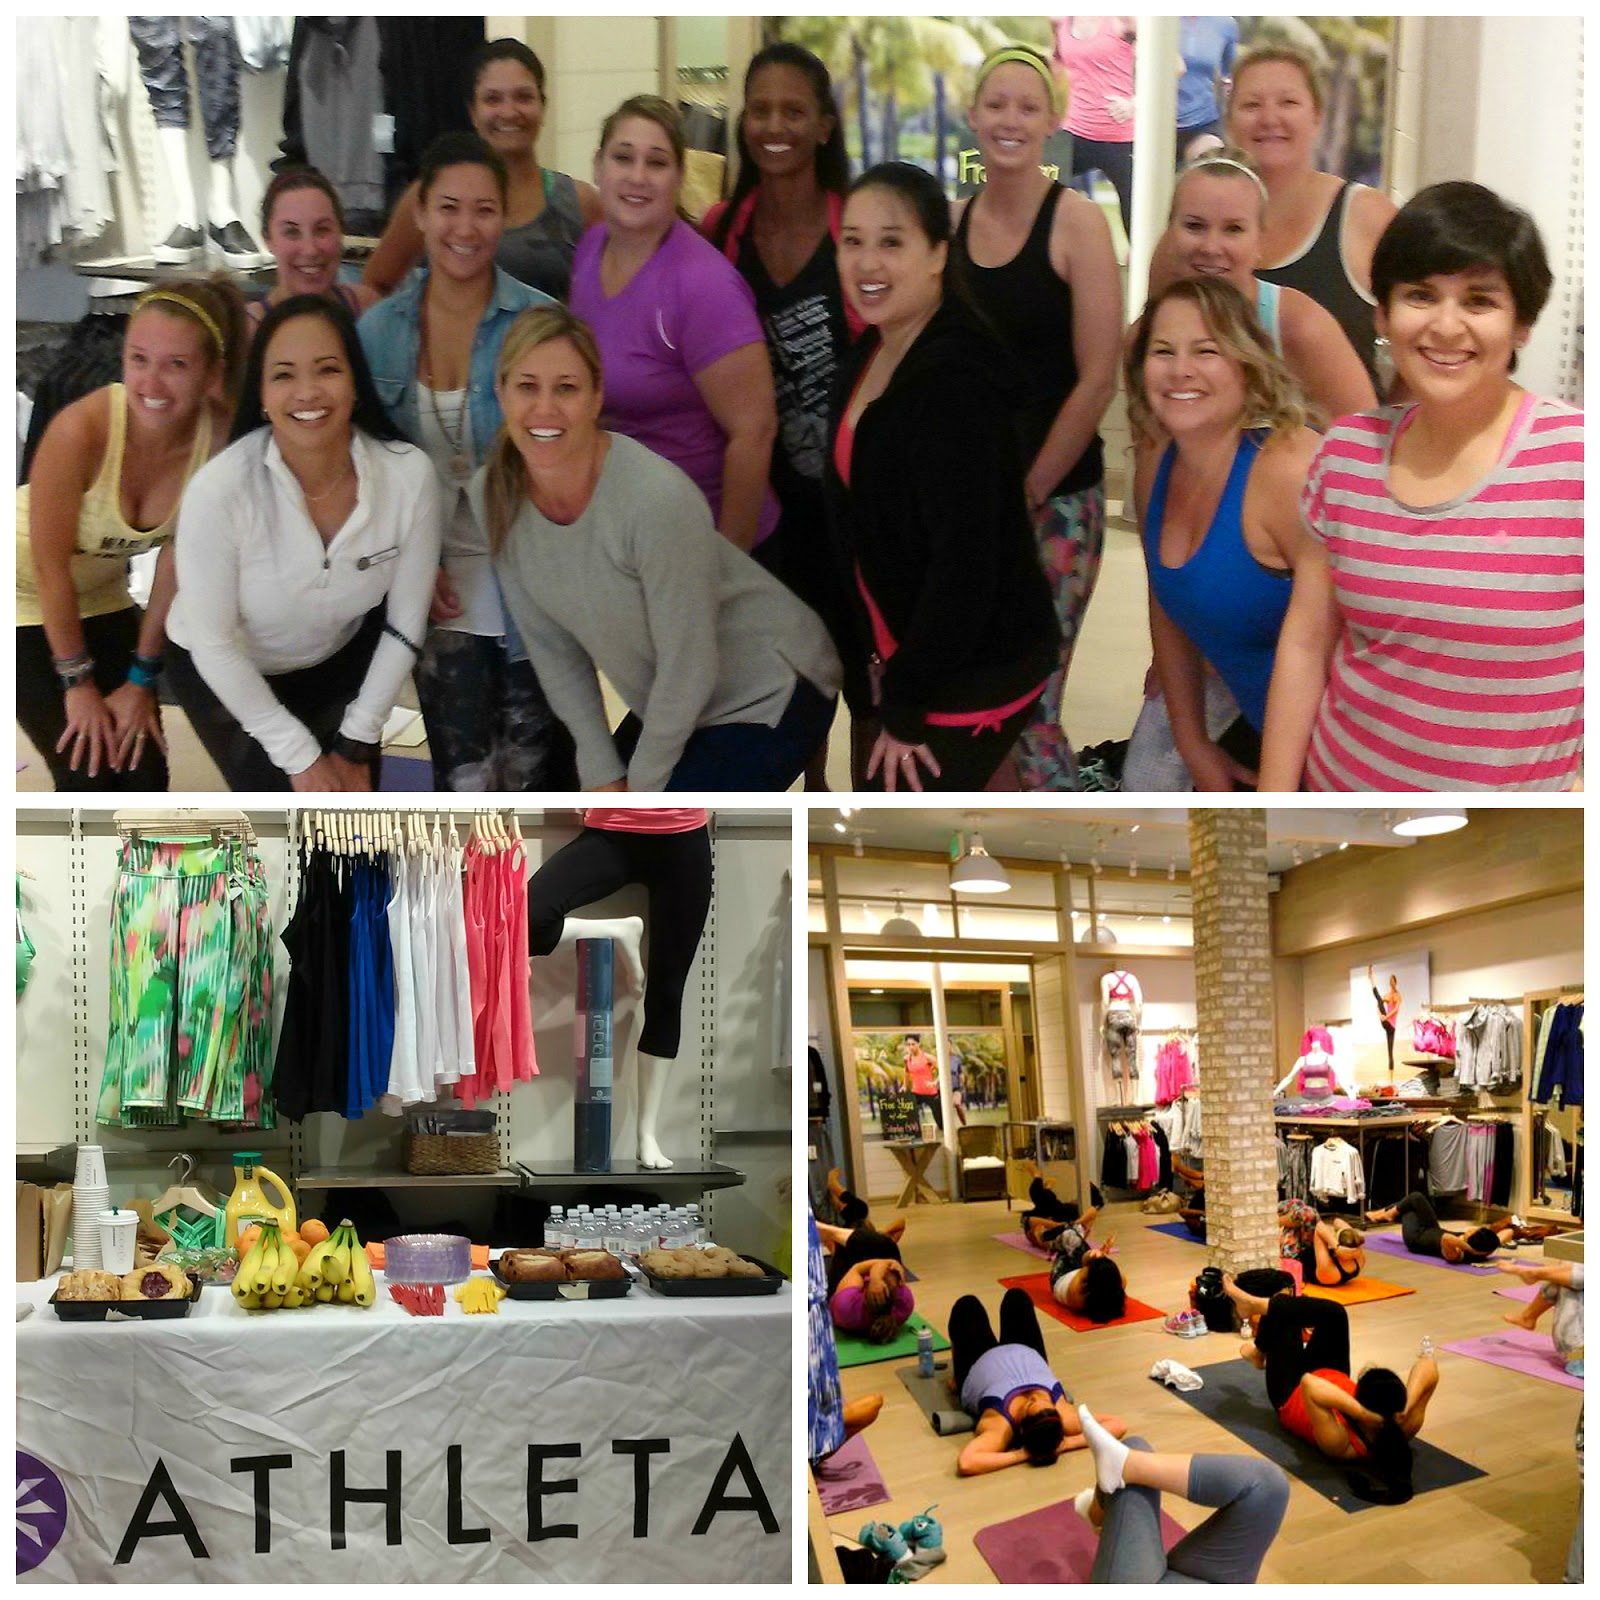 #AthletaUTC #Powertotheshe #fuelingamazing